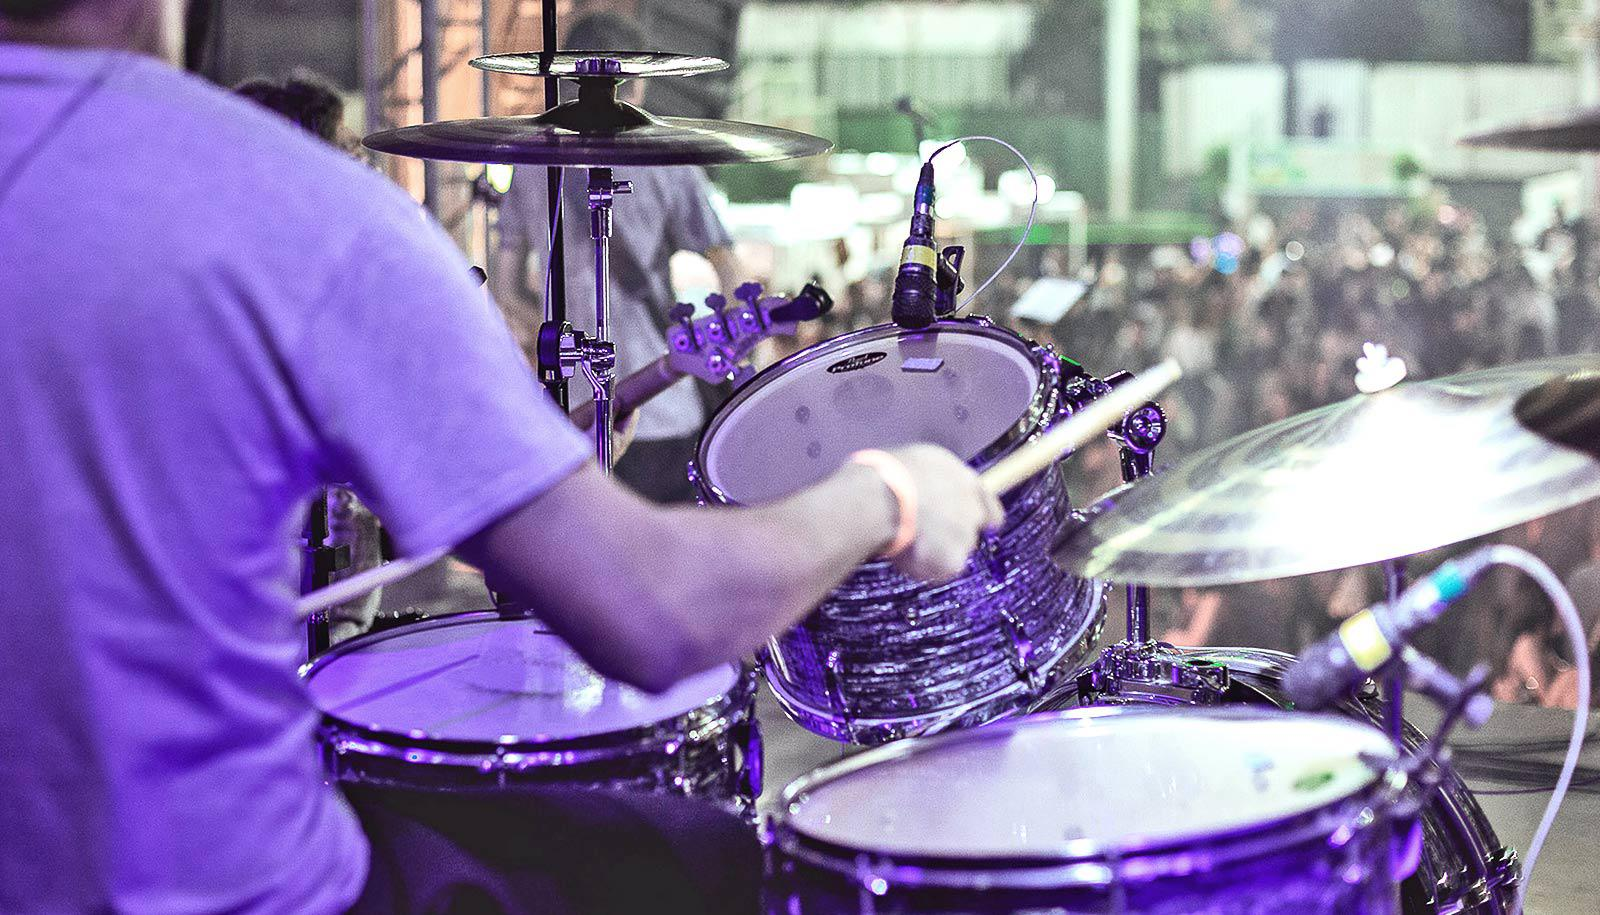 A drummer plays on stage for a crowd